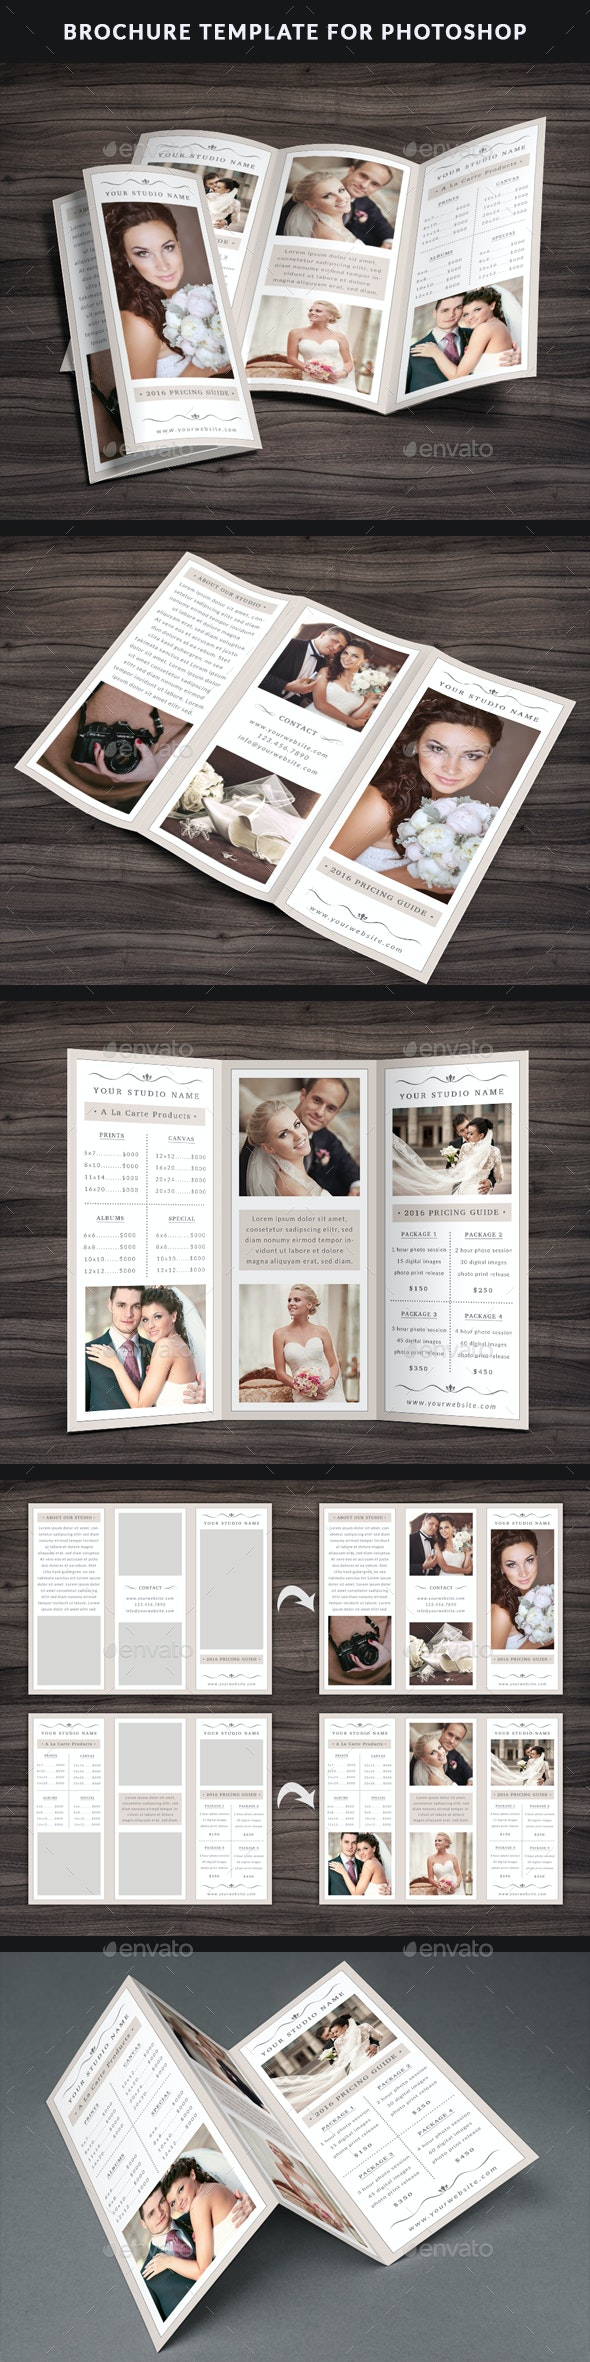 Photography Trifold Brochure Template - Brochures Print Templates